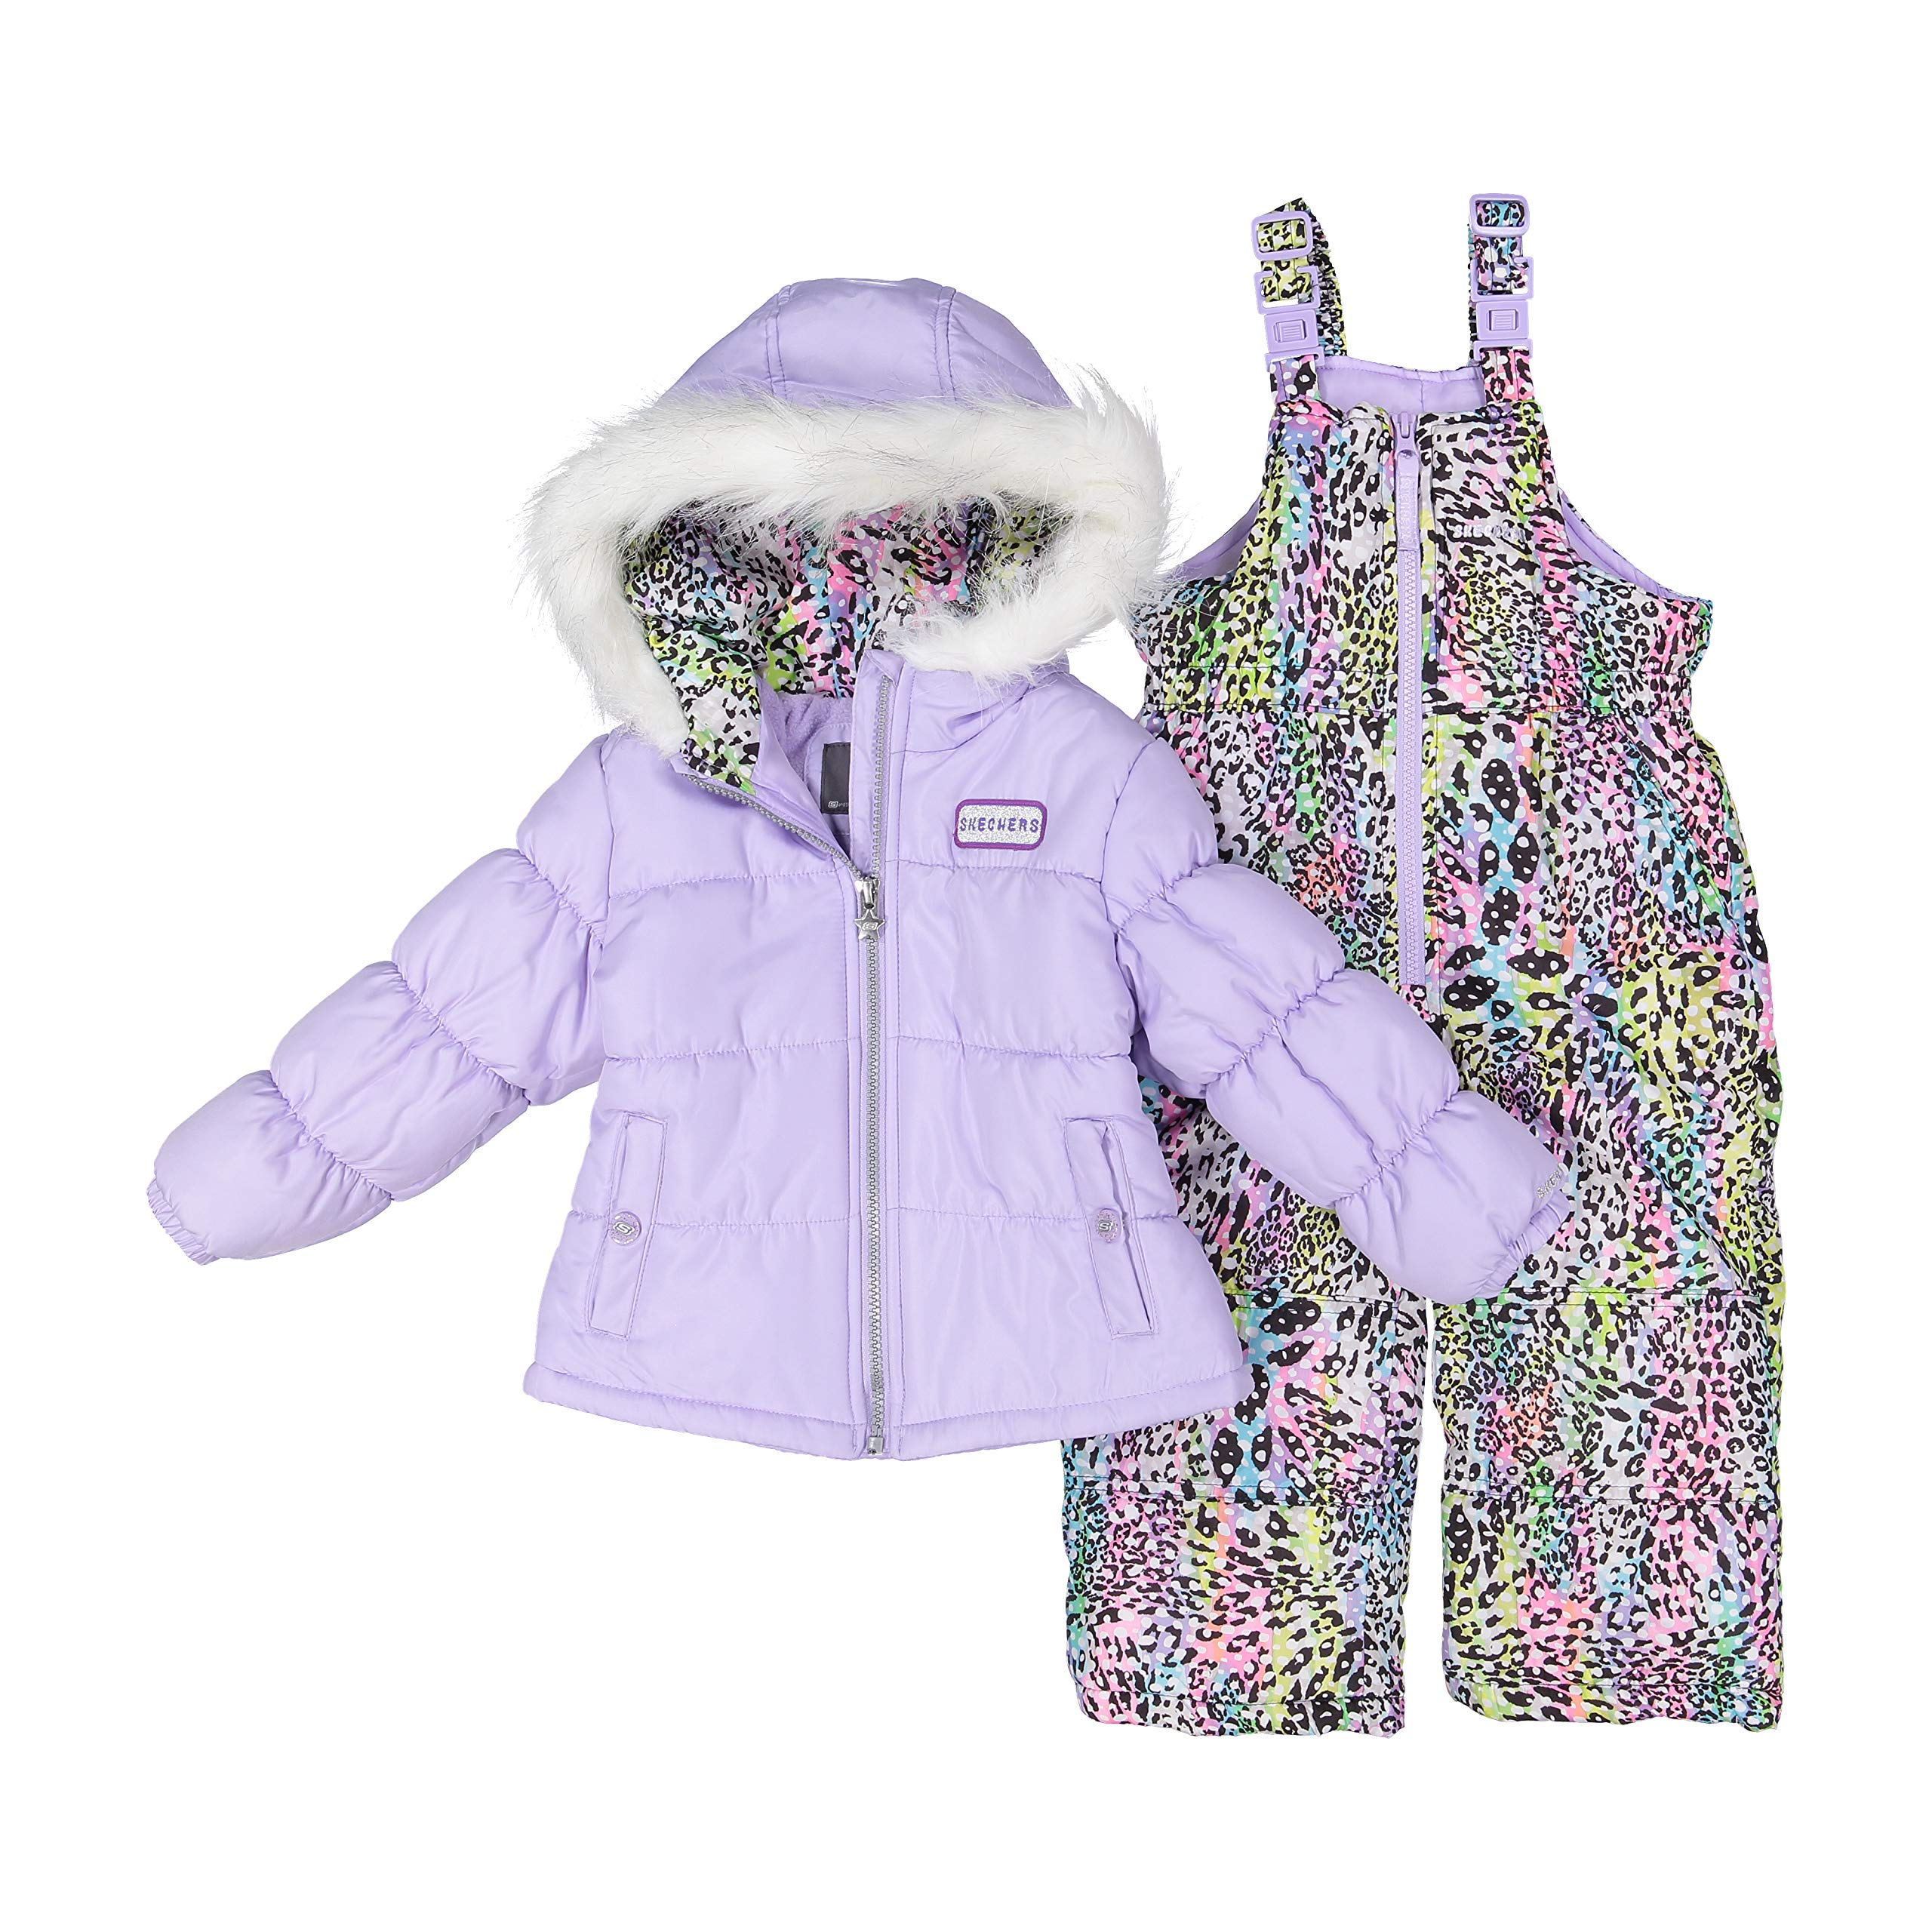 Skechers Girl's 2-Piece Heavy Weight Insulated Snowsuit (Lavender, 4) by Skechers